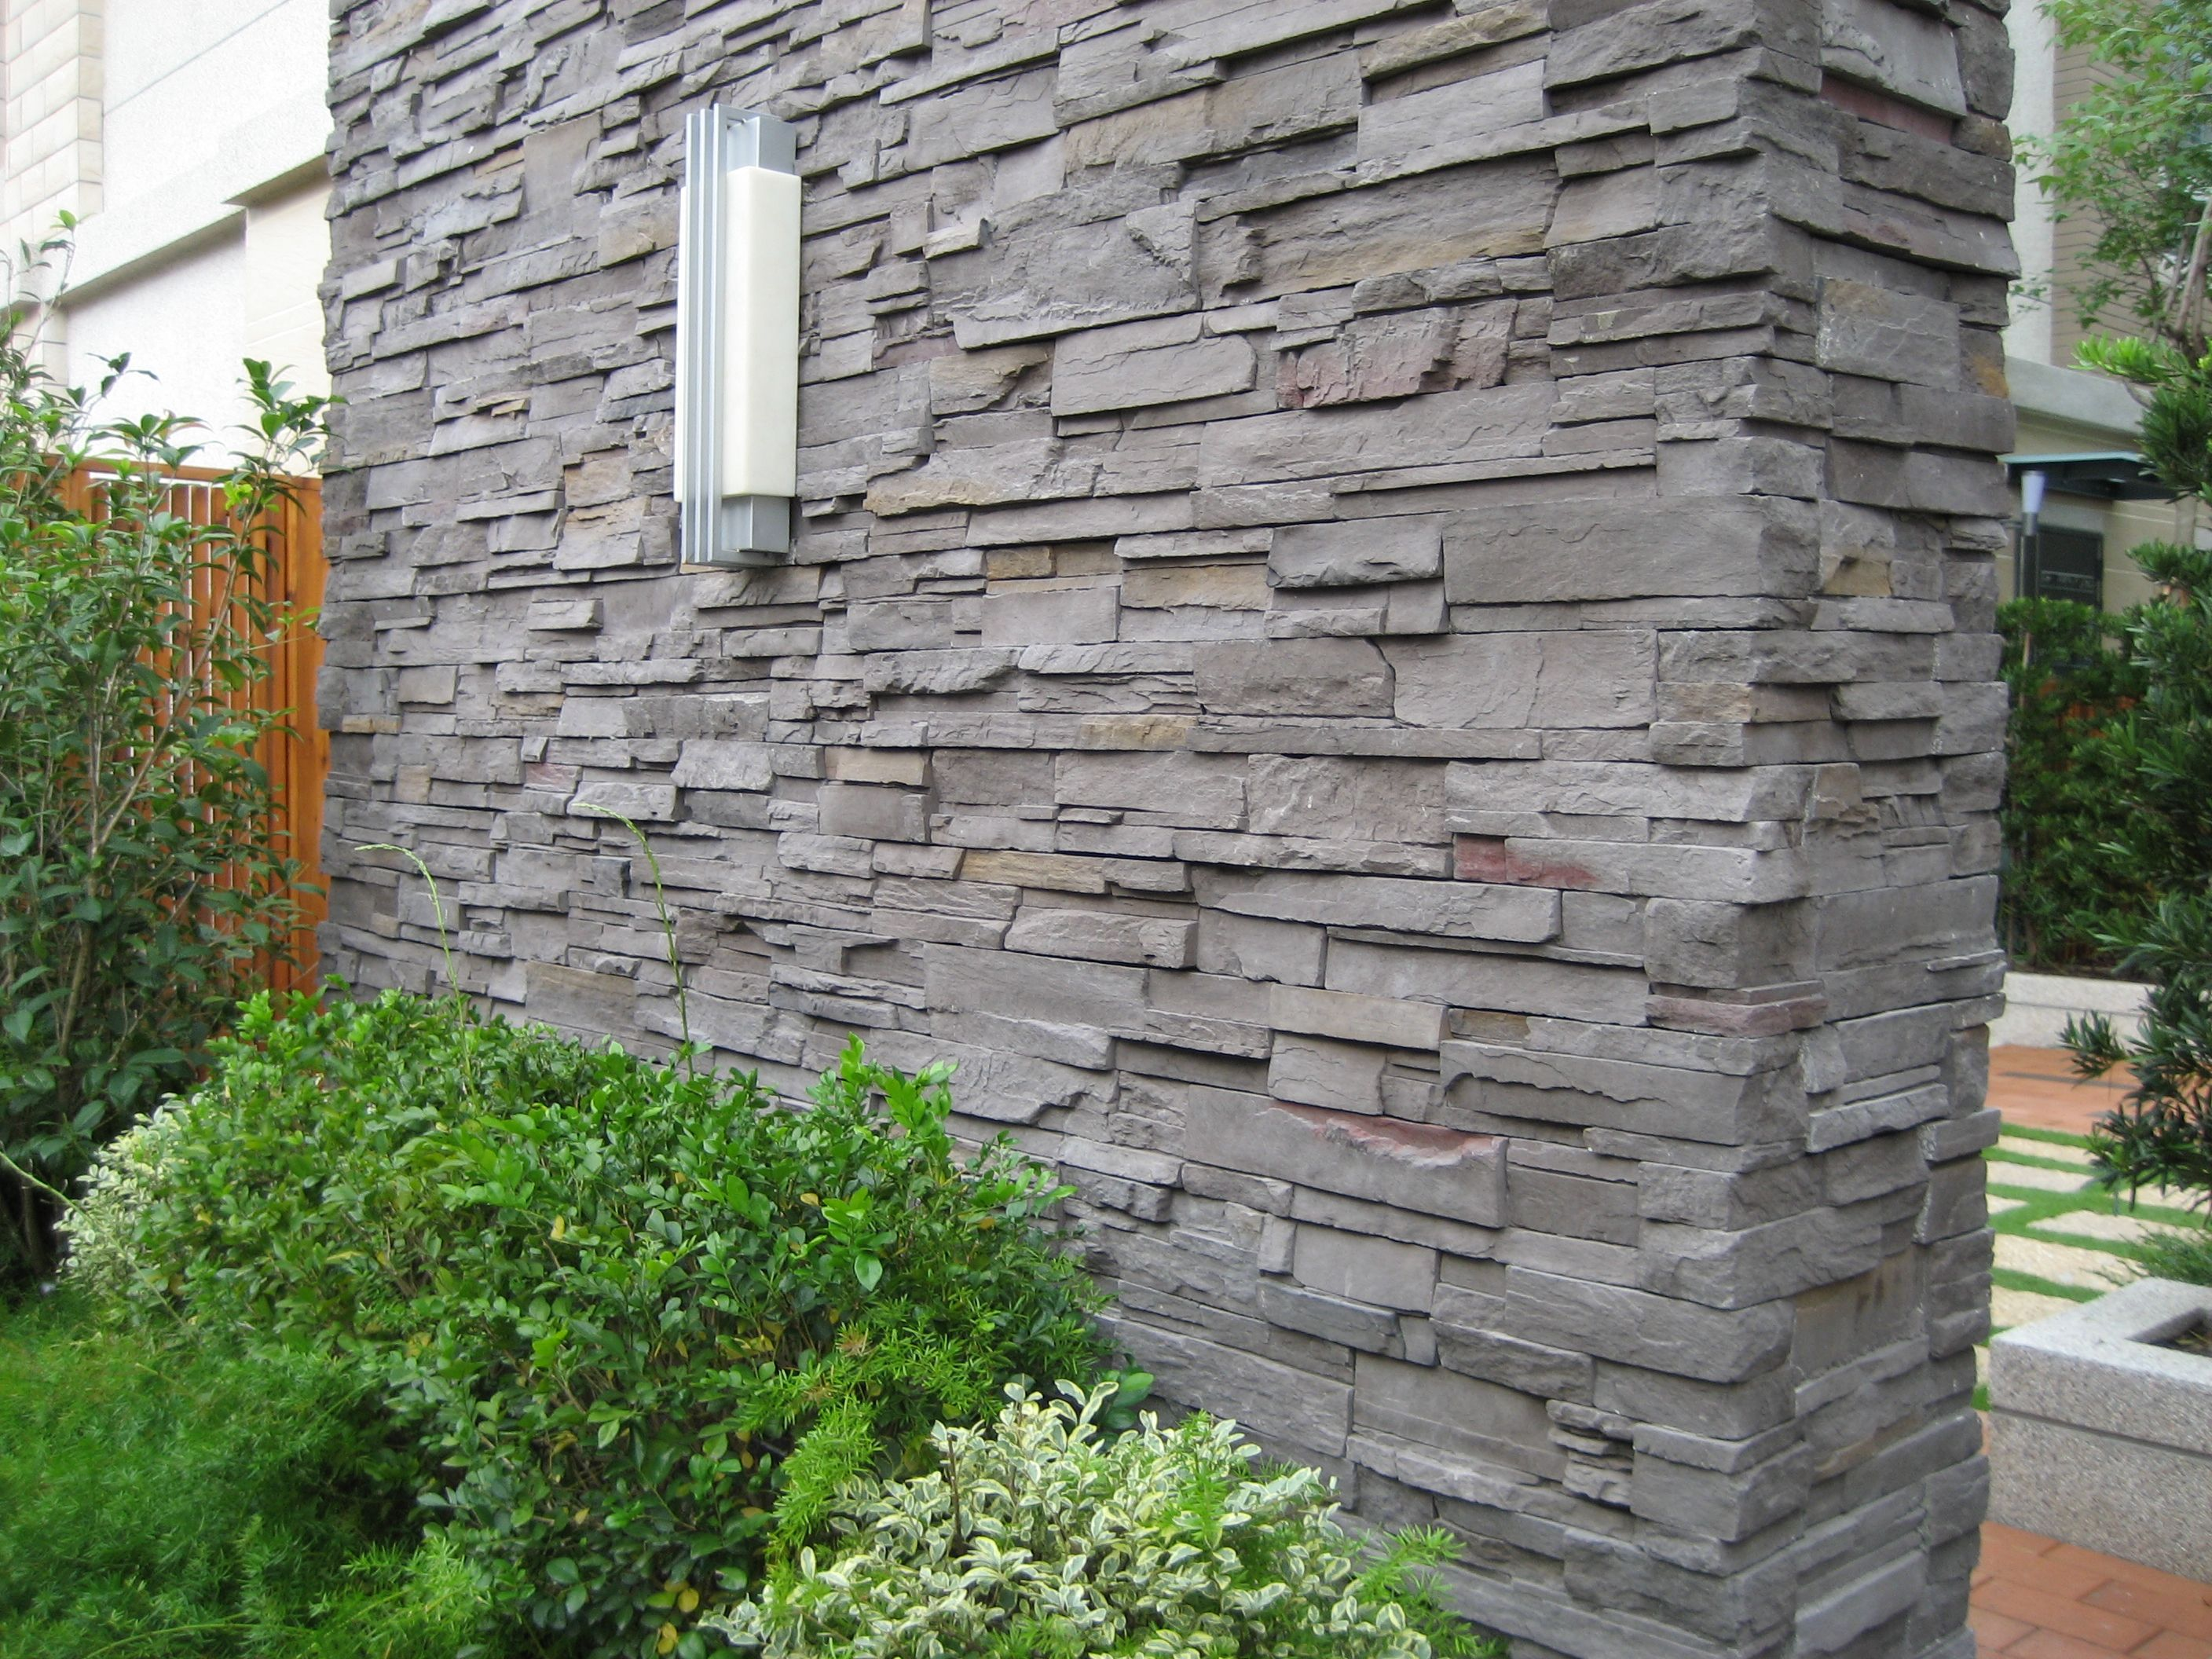 Stone Selex Delivers Greater Stone Veneer For Stone Fireplaces With .